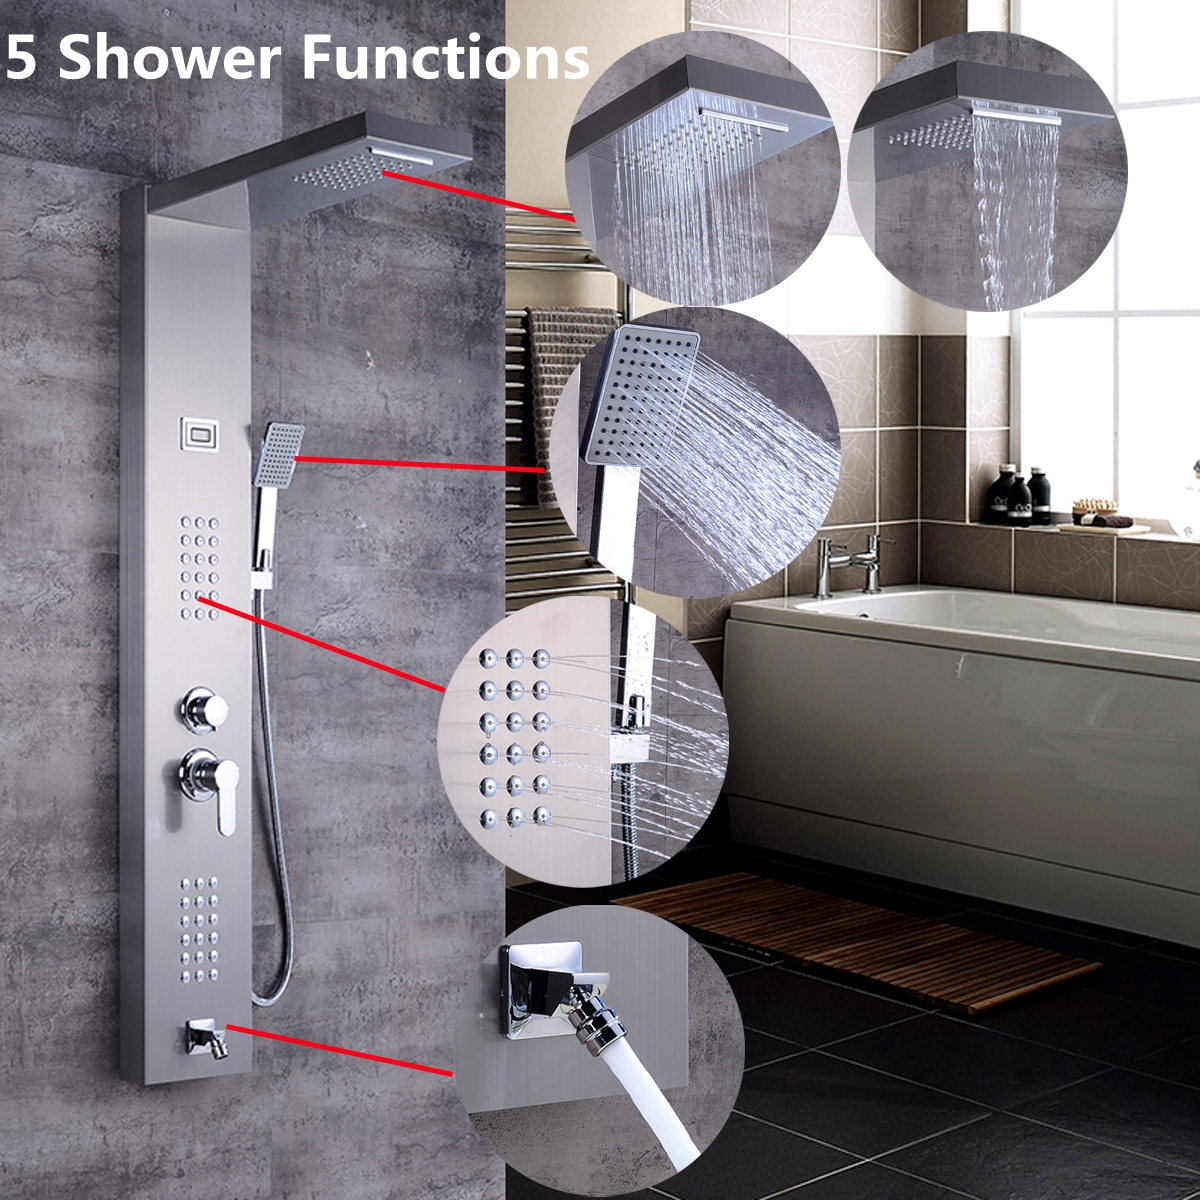 Shower Equipment Brushed Nickel Finish Massage Jet Tankless Rainfall Shower Tower Bathroom Rainfall Shower Panel Thermostatic Spout Shower Column Shower Faucets